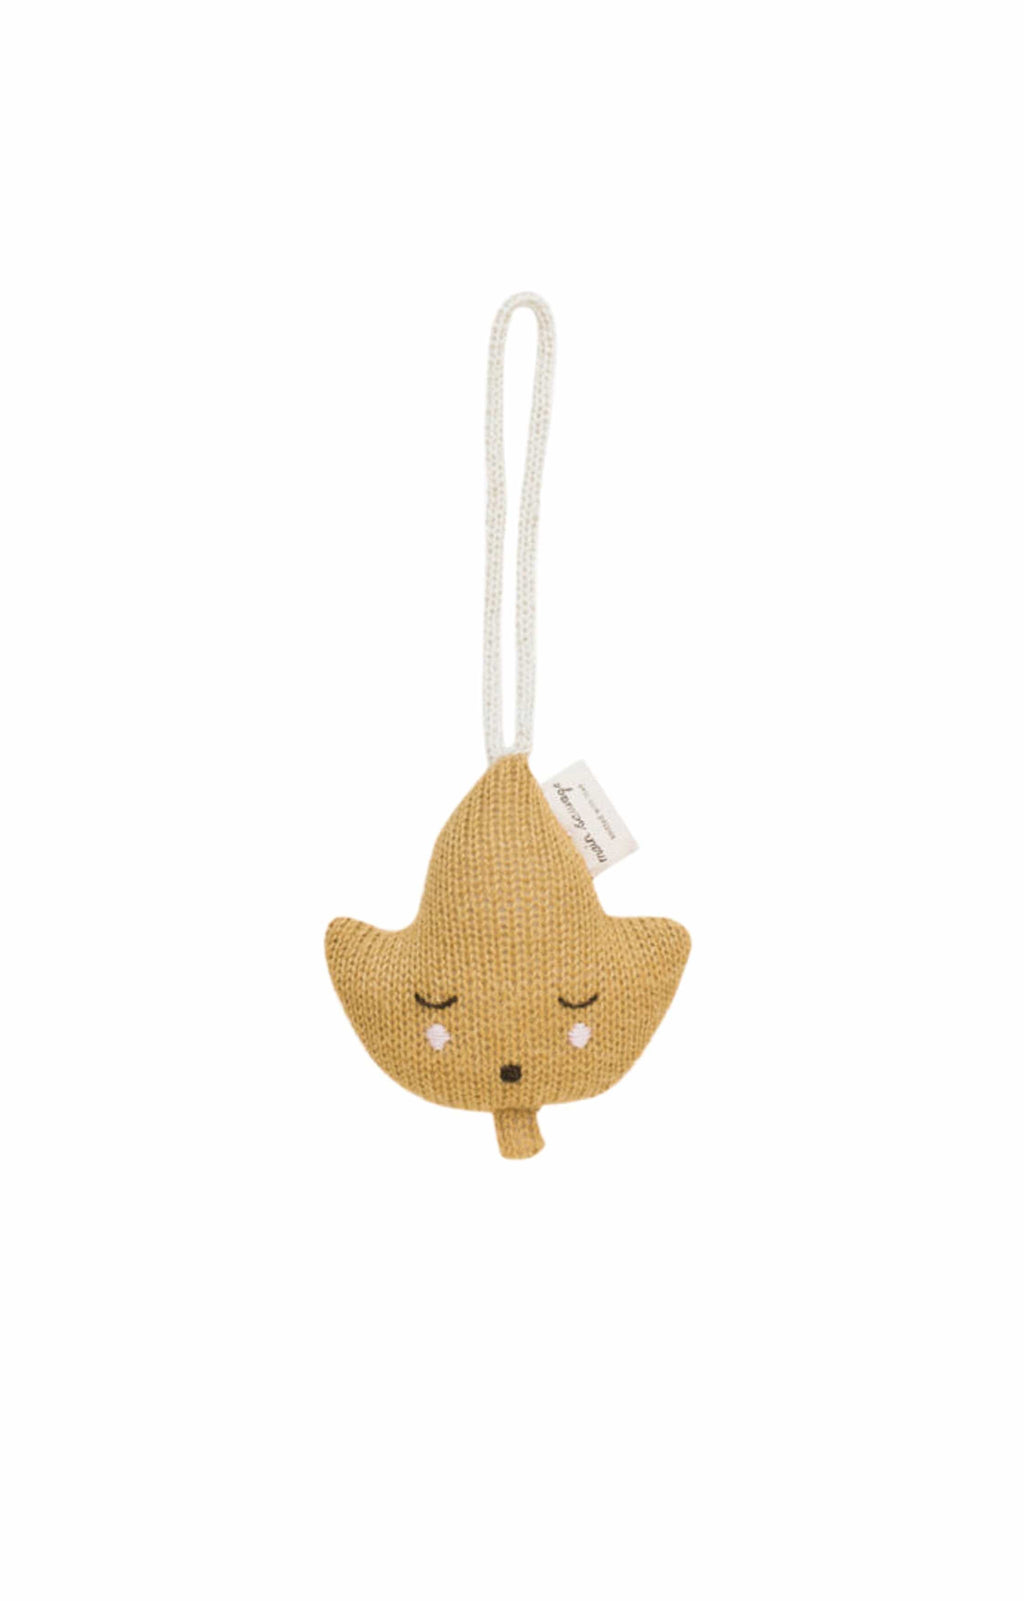 Main Sauvage leaf hanging rattle (PRE-ORDER NOV) - Hello Little Birdie